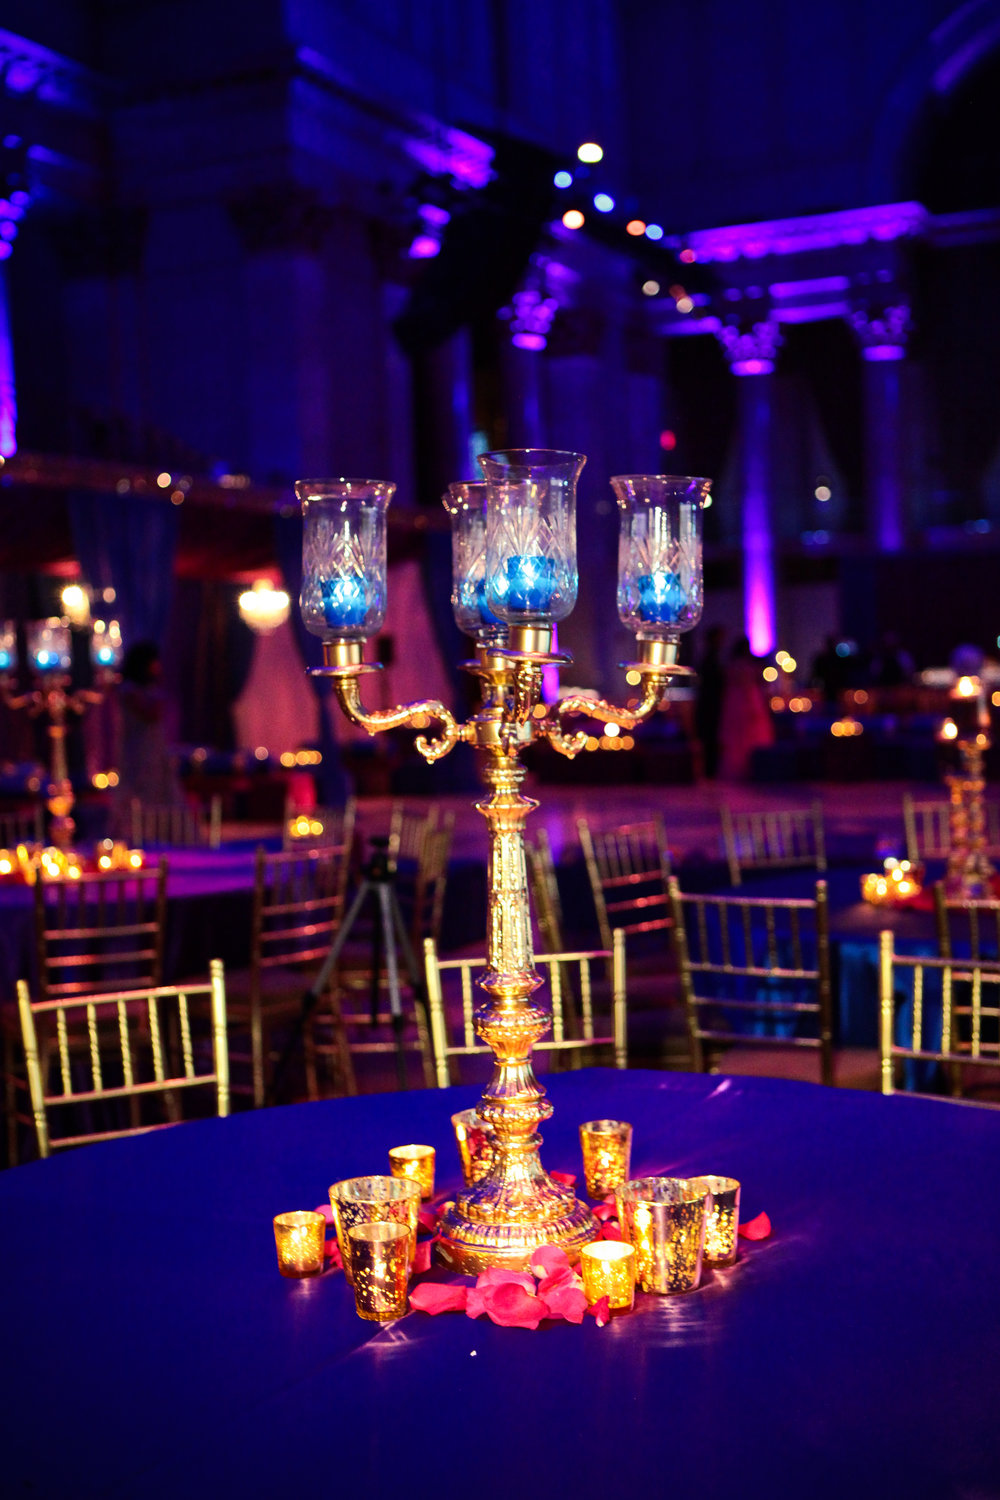 Gold Candelabra in Blue in Purple Room